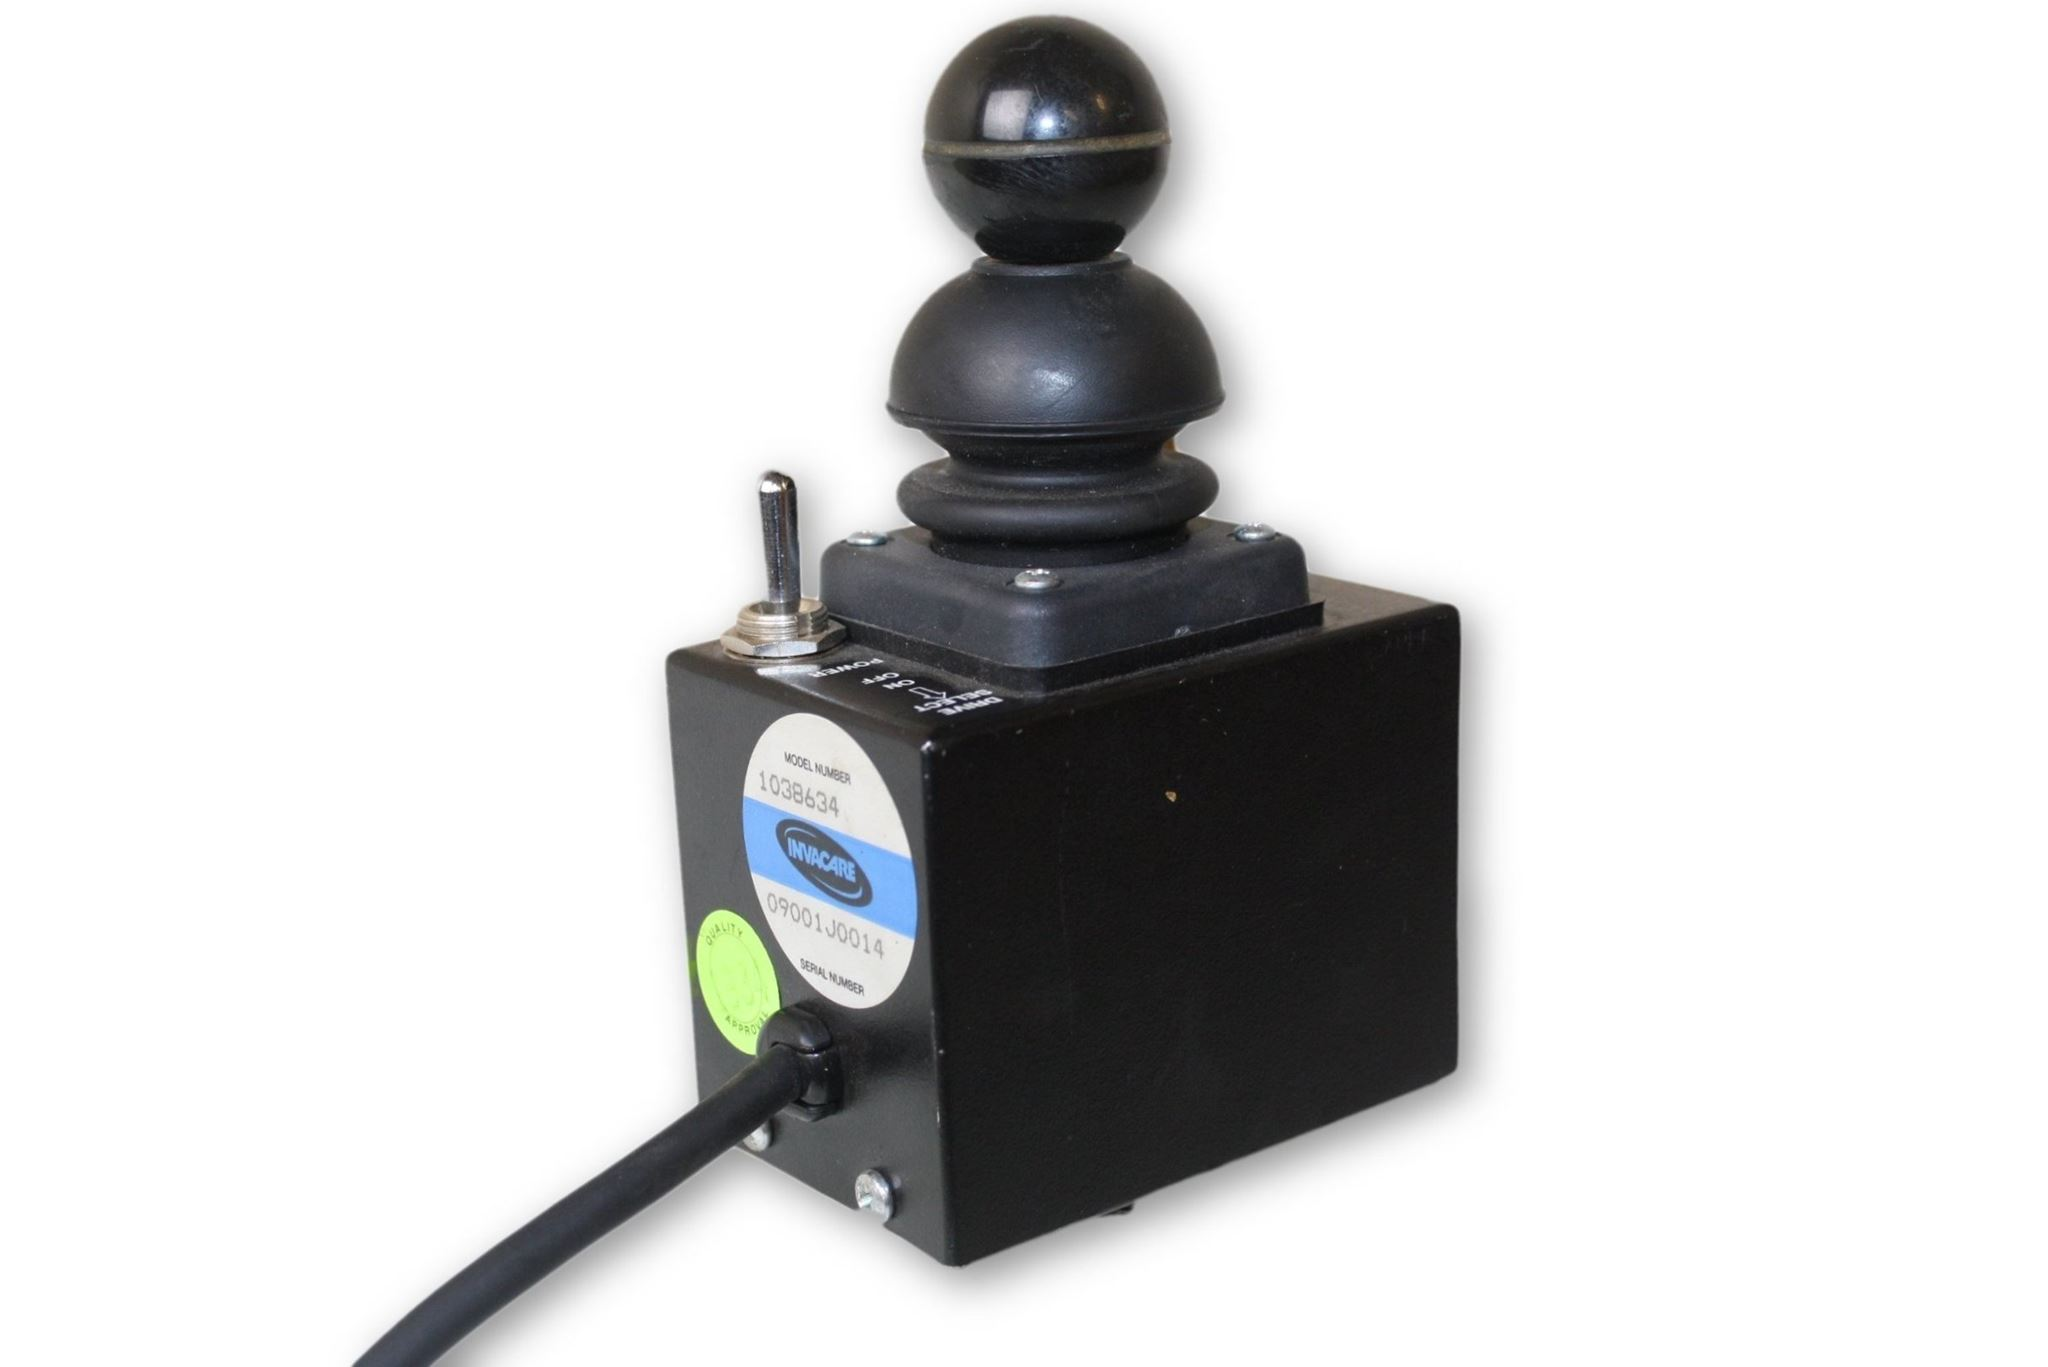 Details about Invacare Electric Wheelchair Joystick Controller 1038634